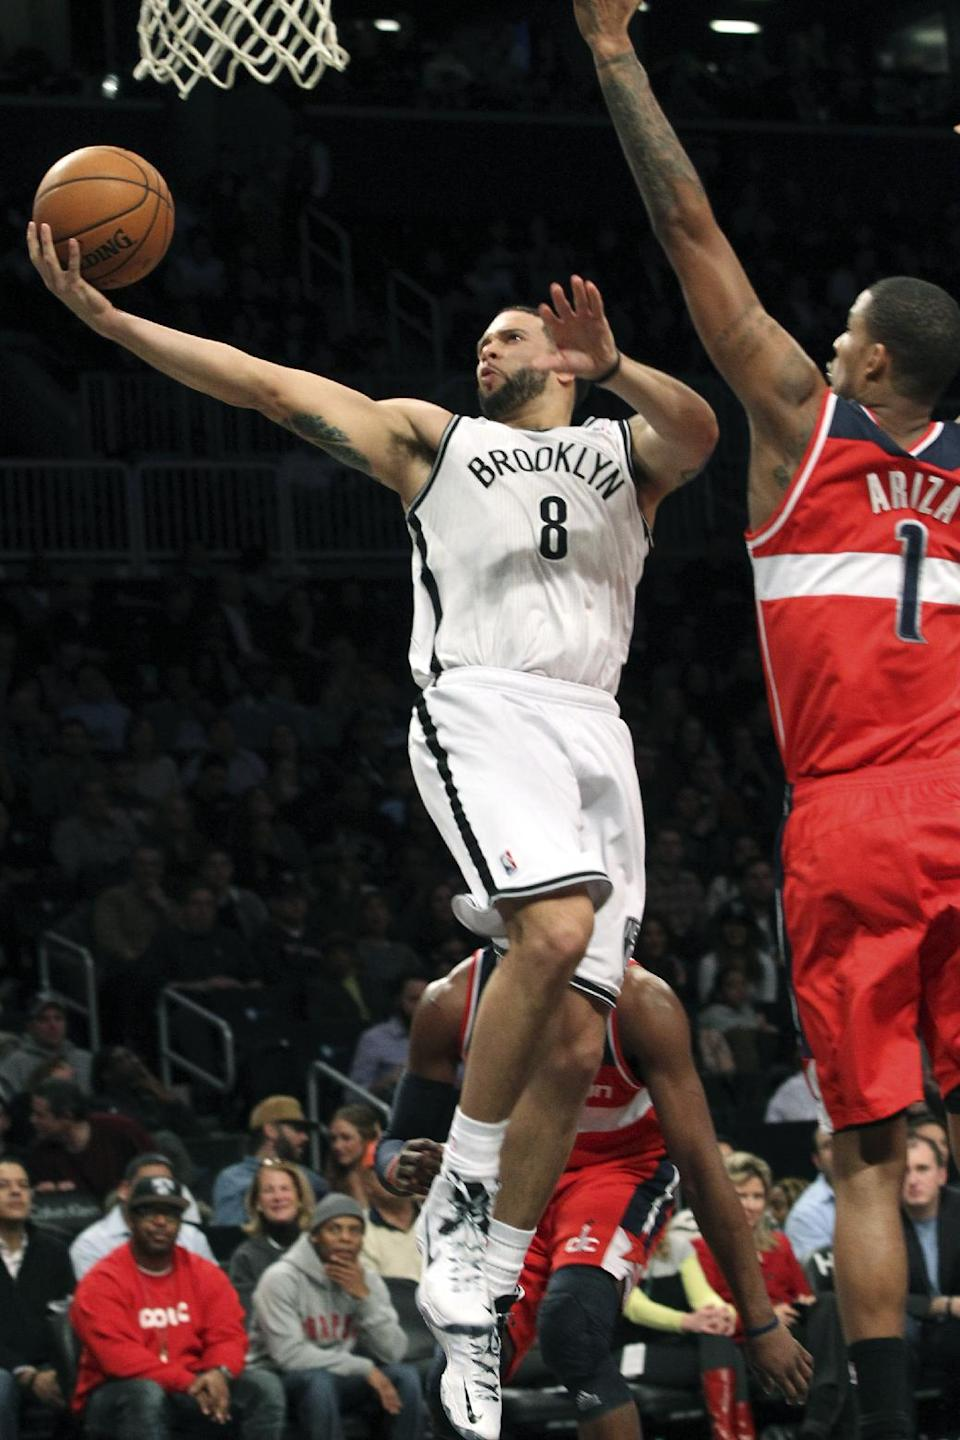 Brooklyn Nets' Deron Williams  (8) goes up against Washington Wizards' Trevor Ariza during the first half of NBA basketball game, Friday, March 8, 2013, in New York. (AP Photo/Mary Altaffer)